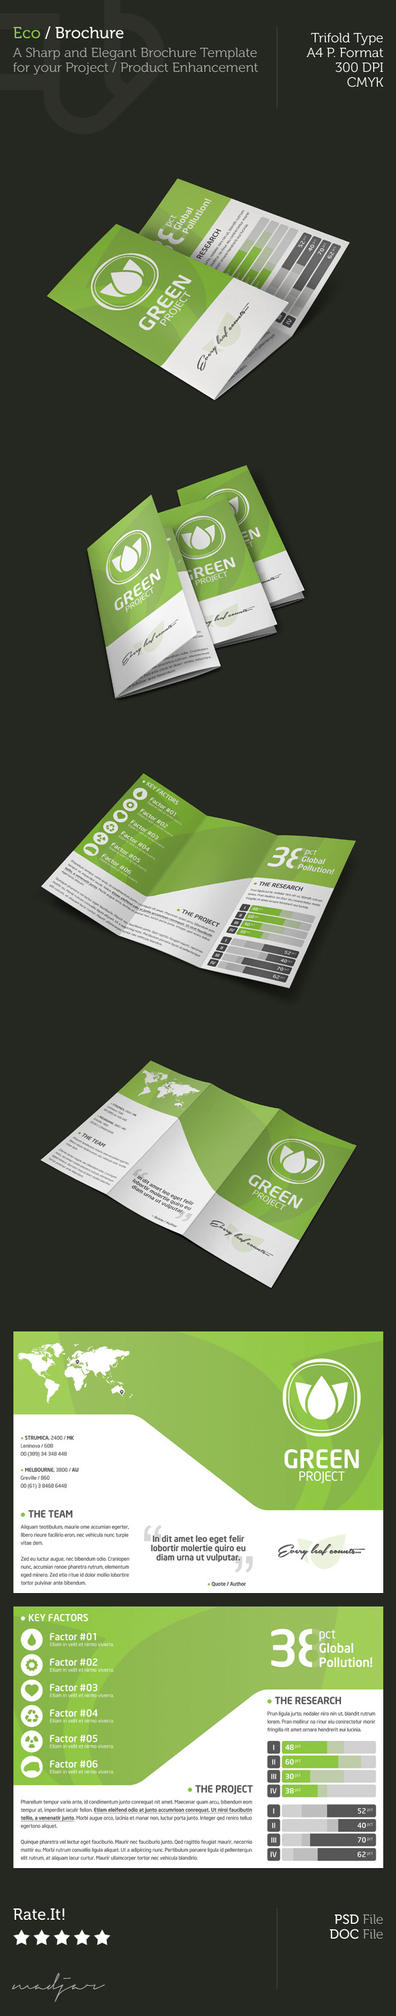 Eco - Trifold Brochure by madjarov